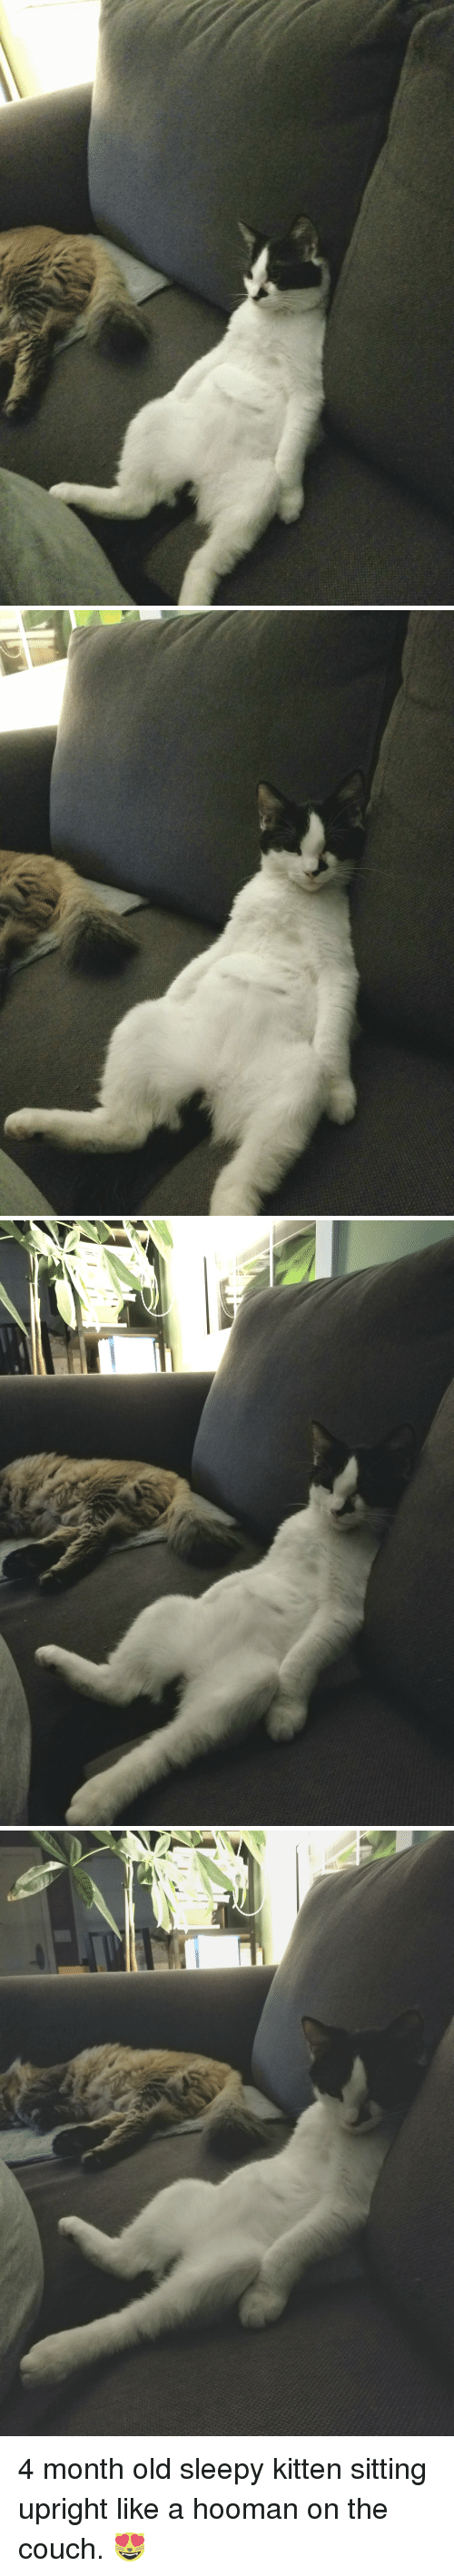 Couch, Old, and Cat: 4 month old sleepy kitten sitting upright like a hooman on the couch. 😻